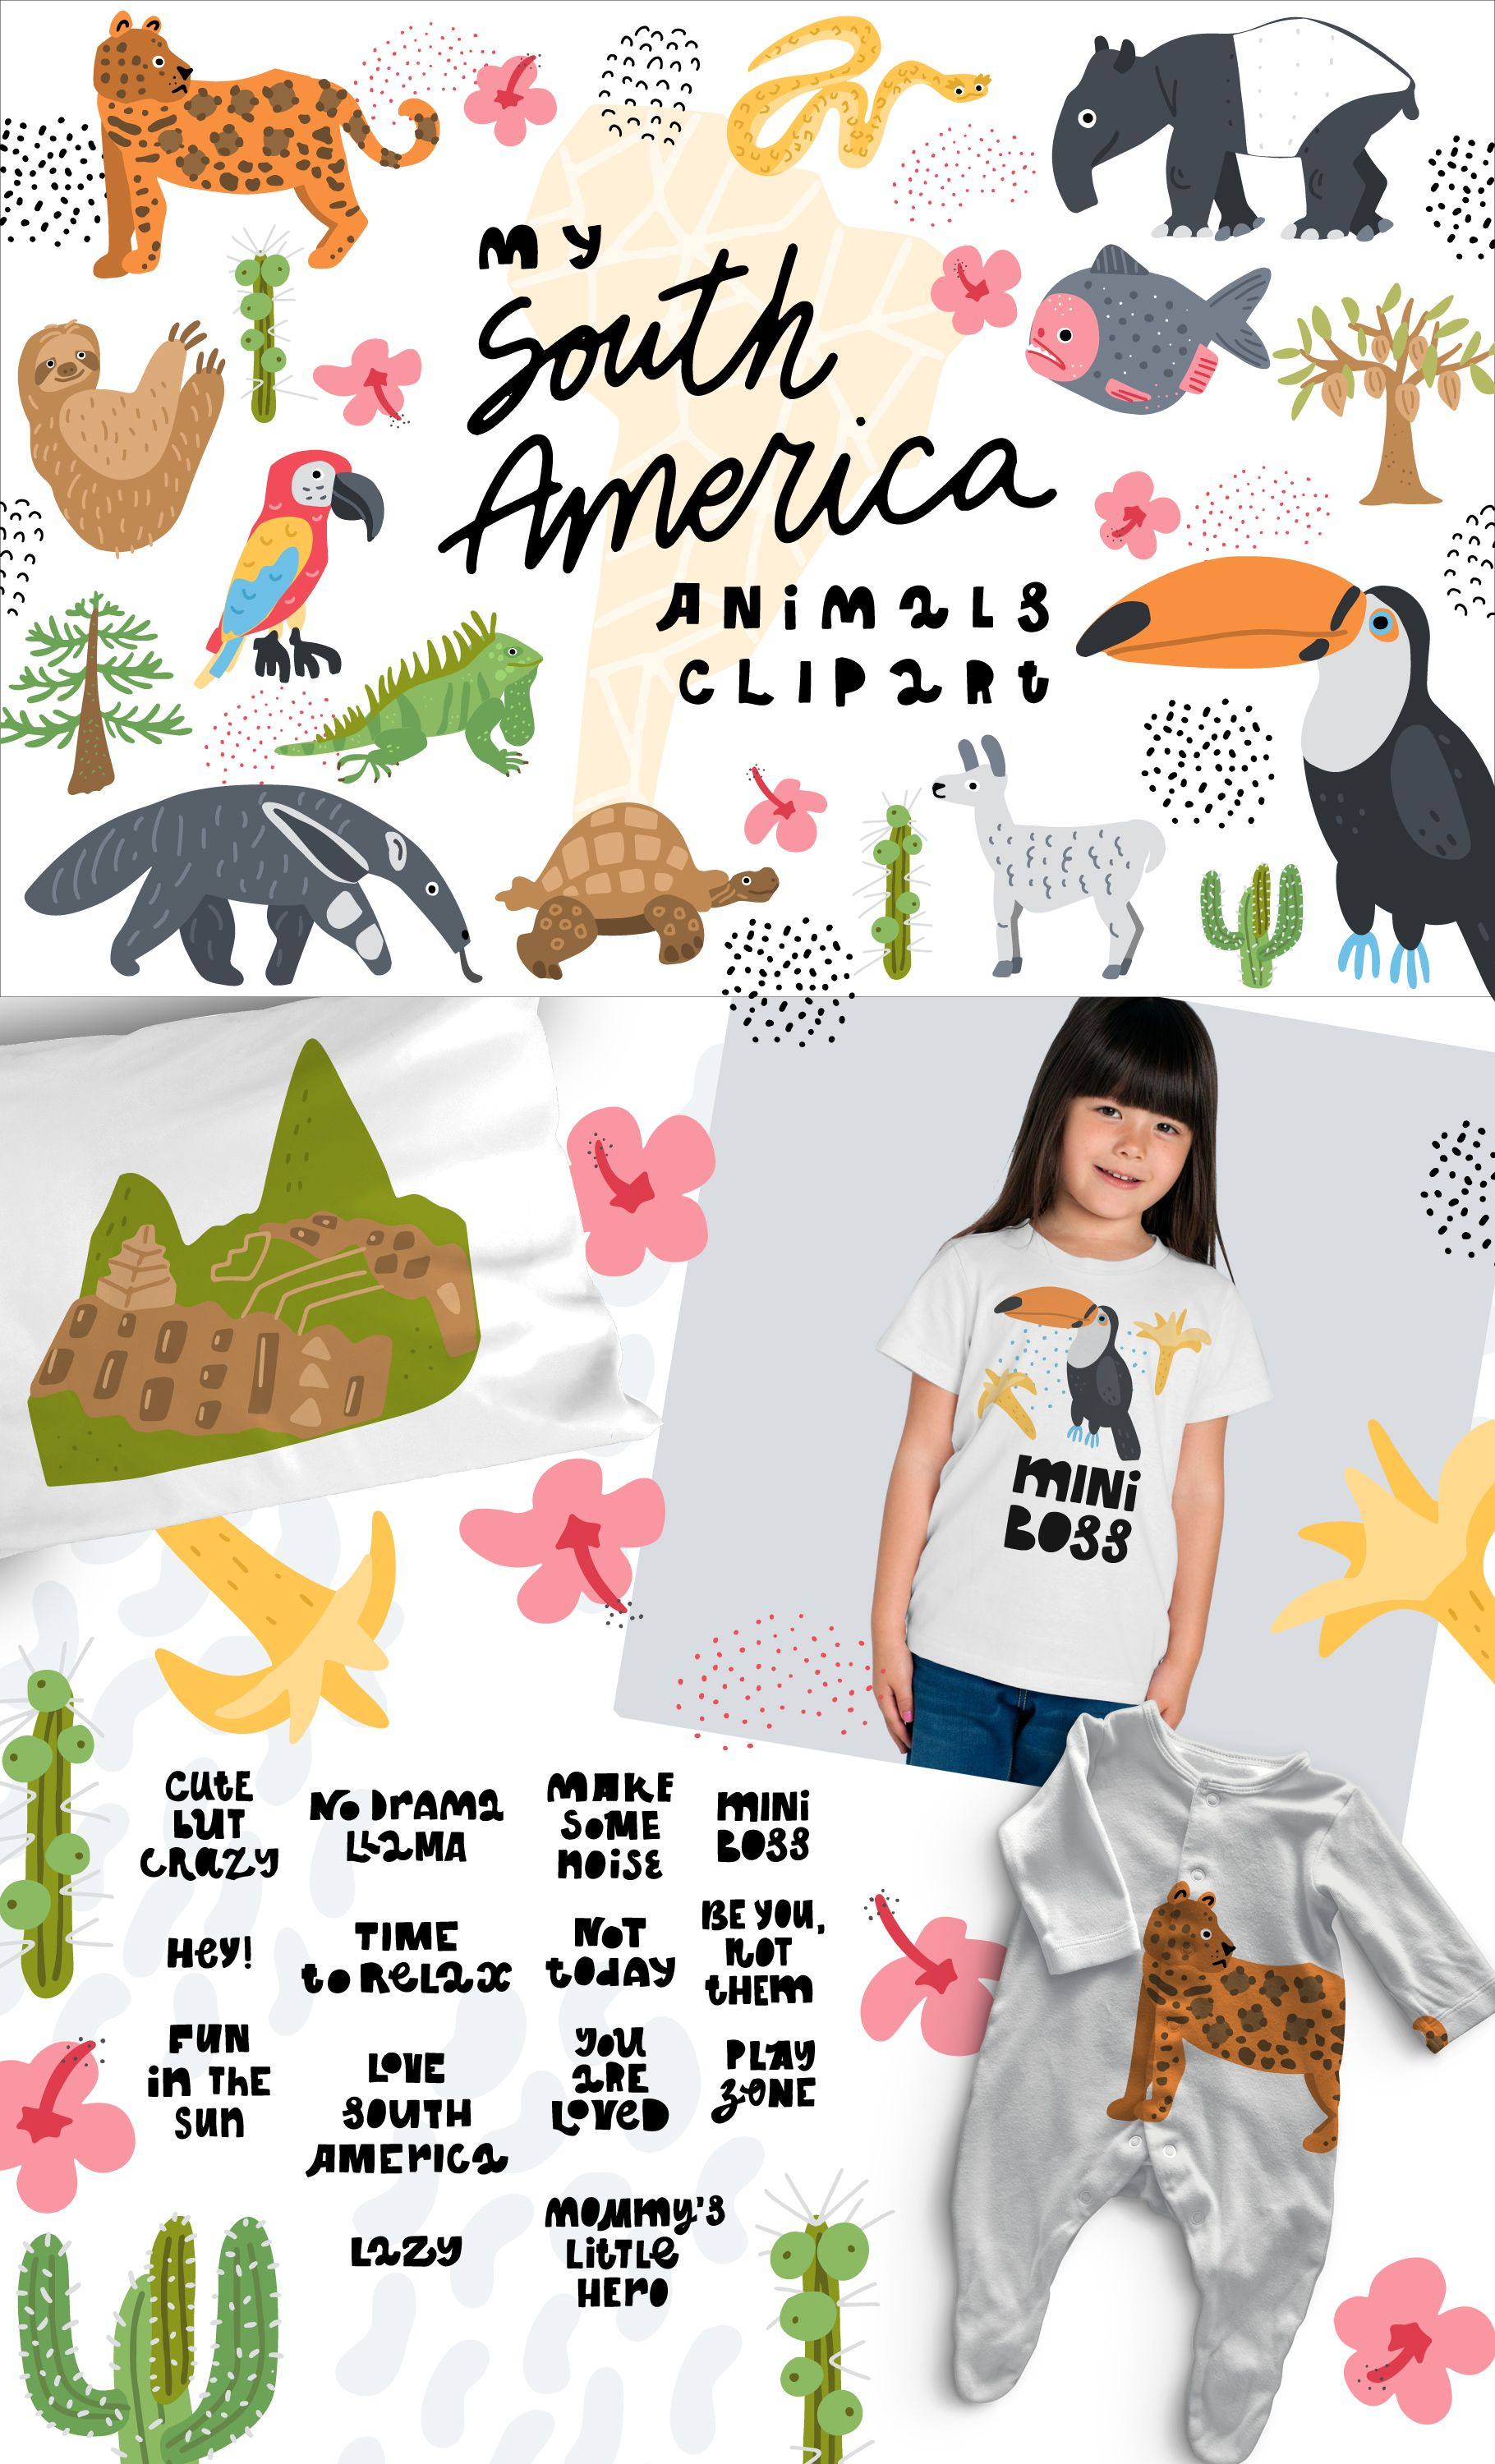 AD: My South America Animals Clipart is nature.